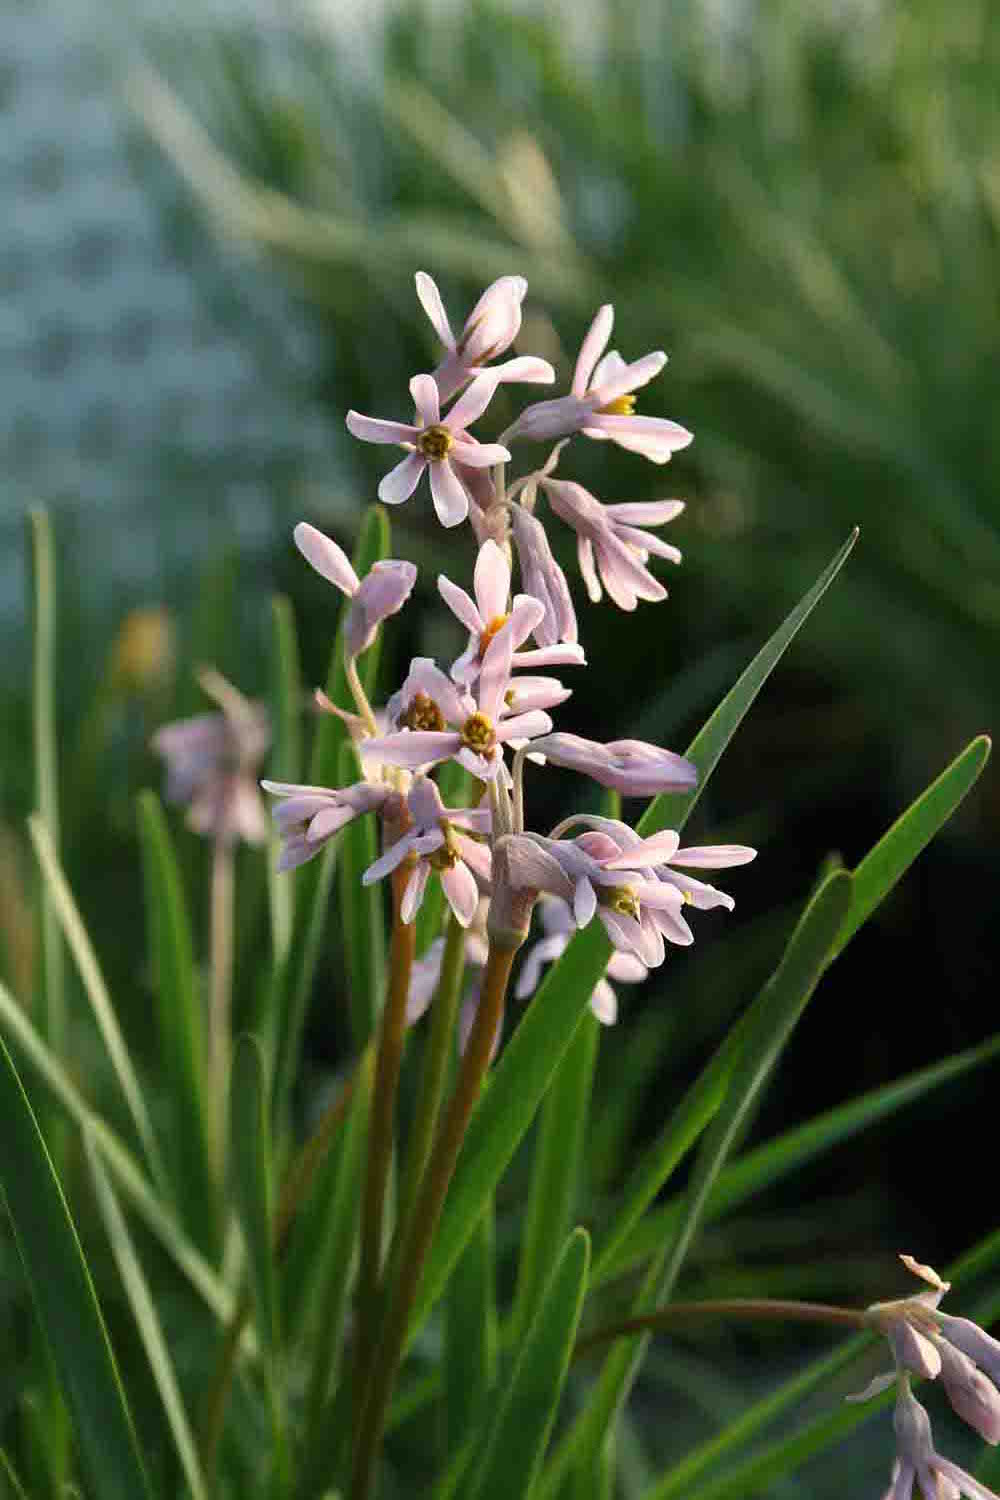 Tulbaghia natalensis CDR 84